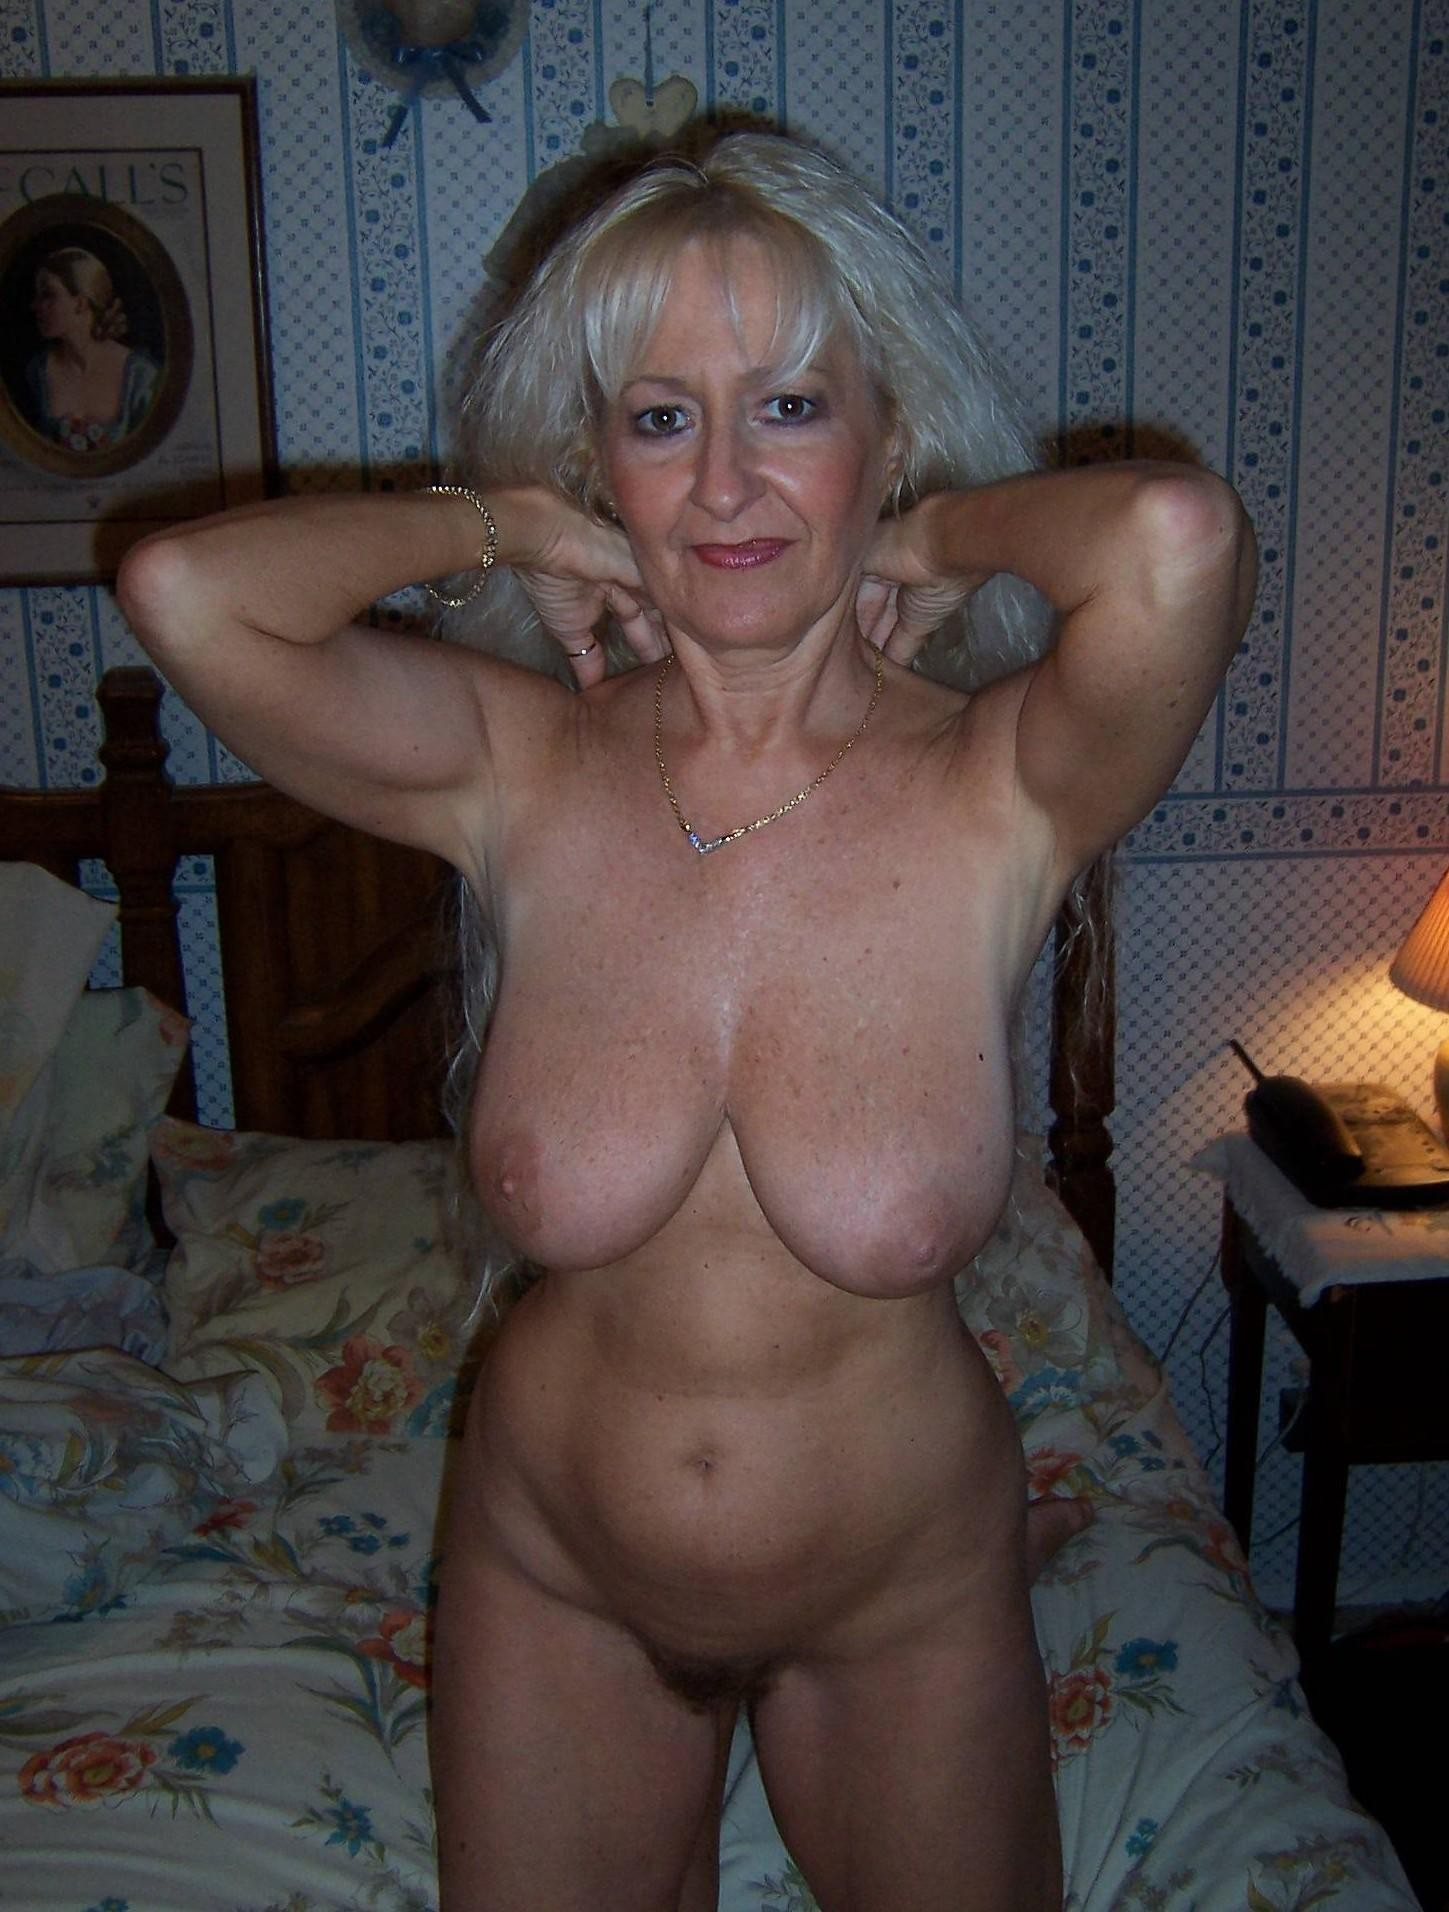 older women sexy galleries nudes